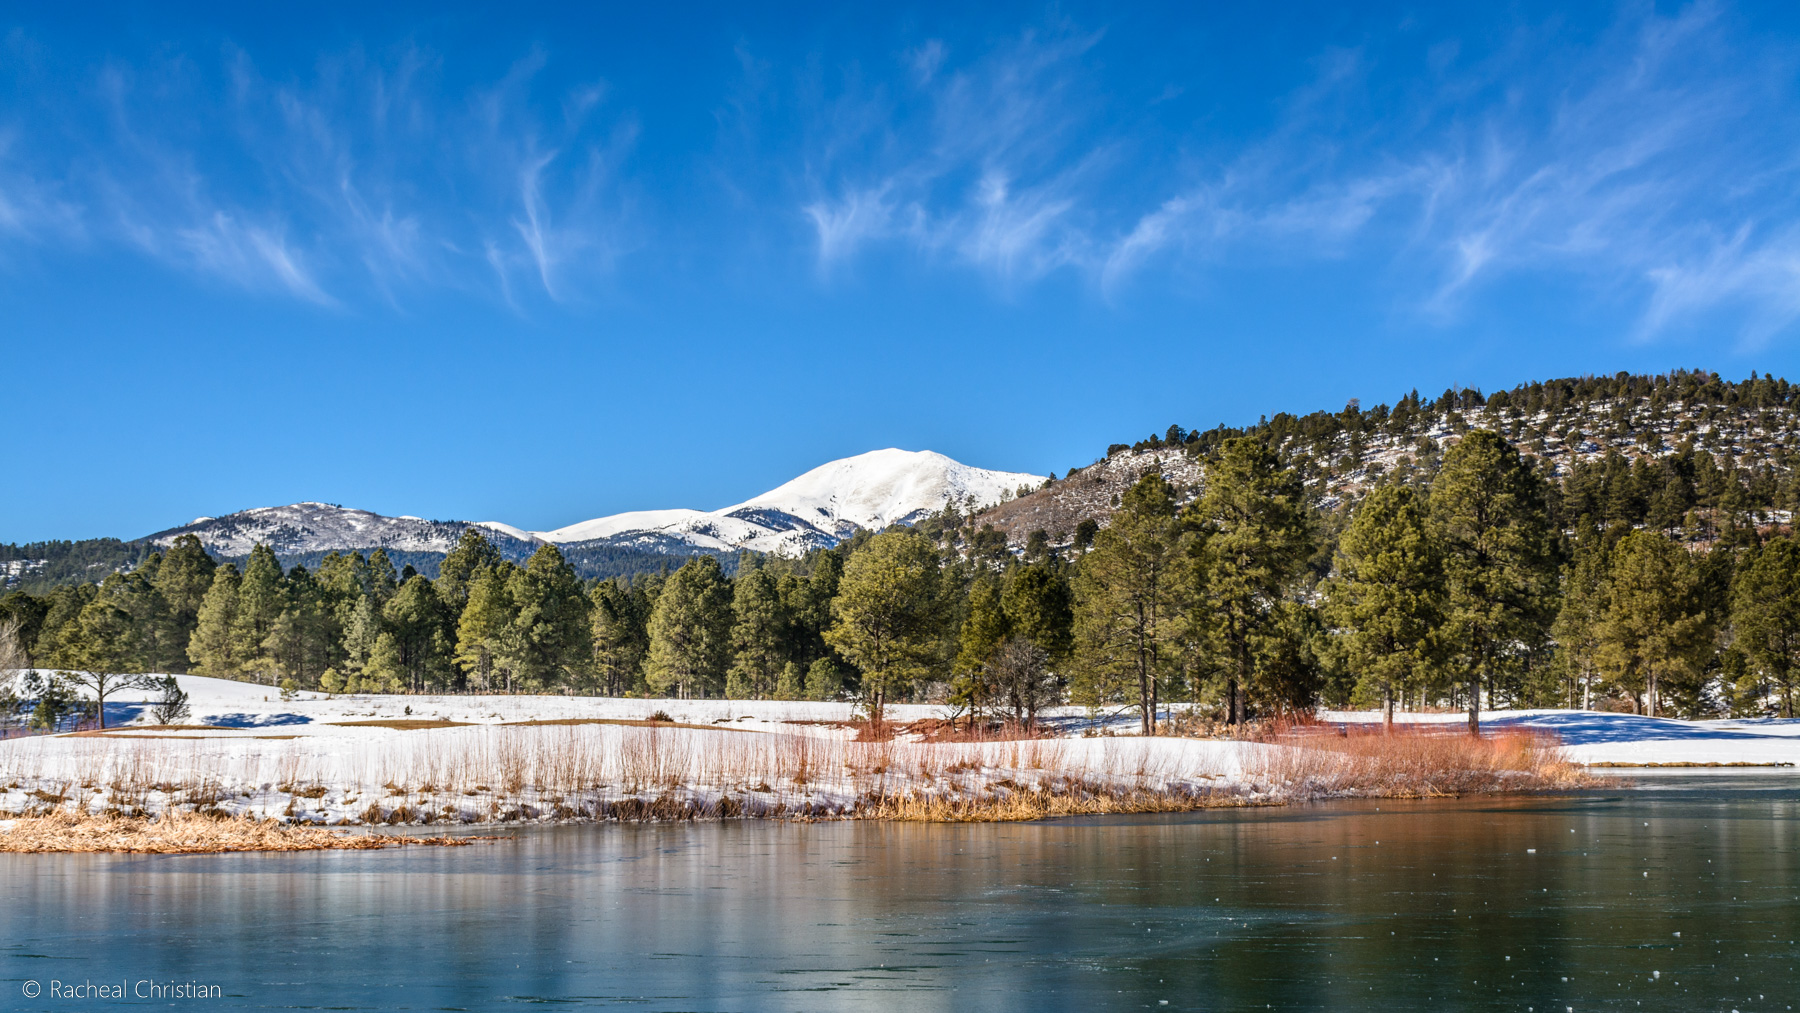 My First Photo Of The Week: Winter In Ruidoso